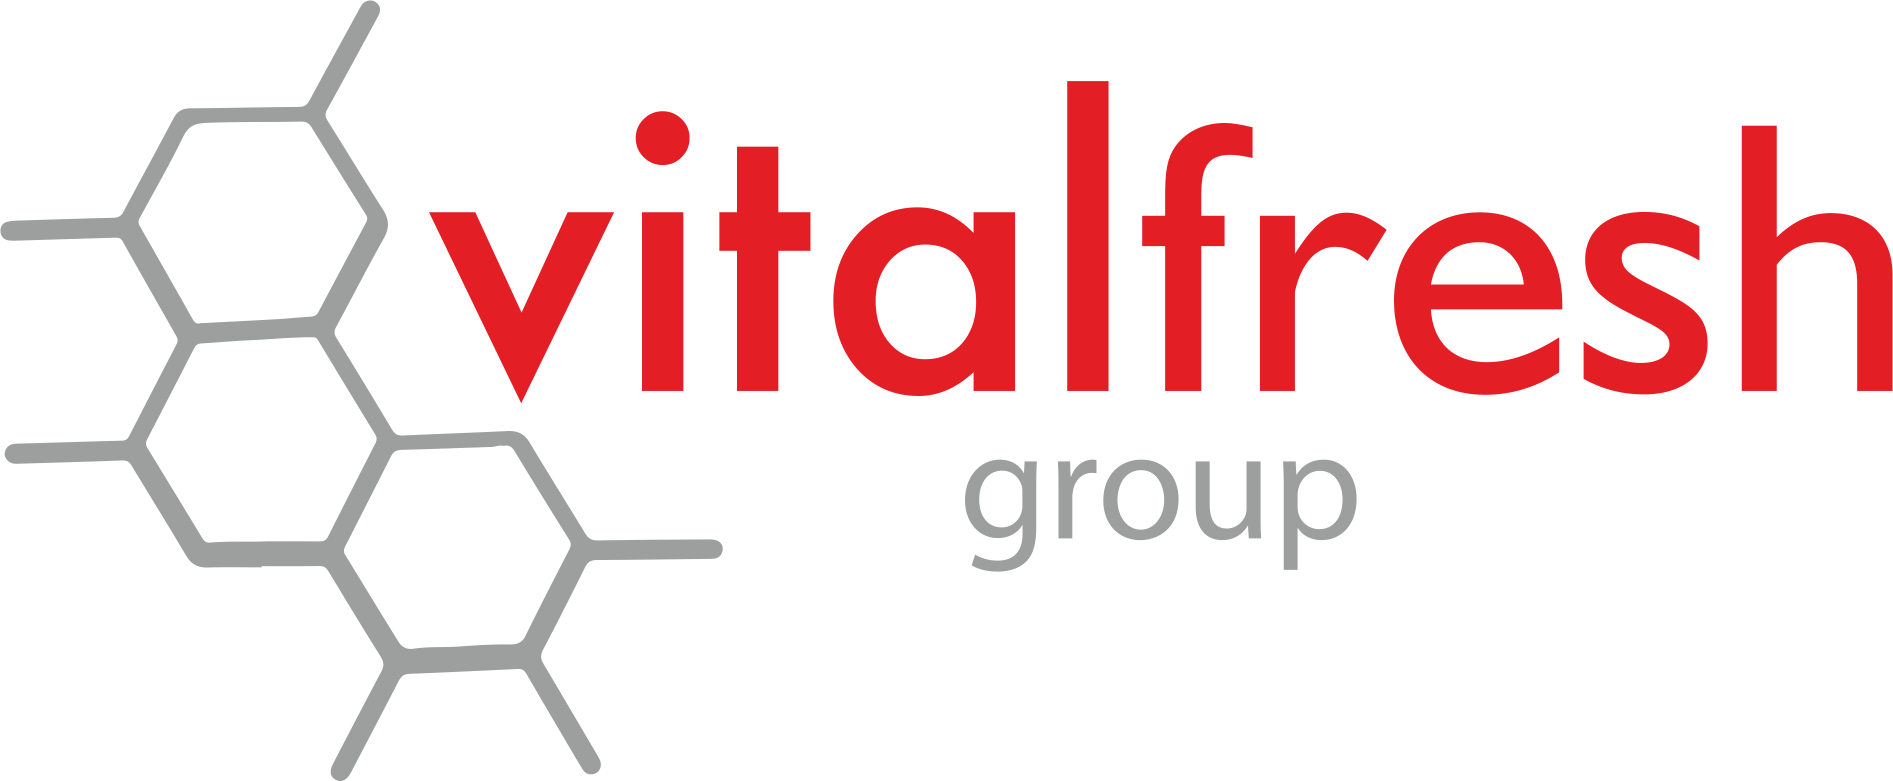 Vitalfresh Group